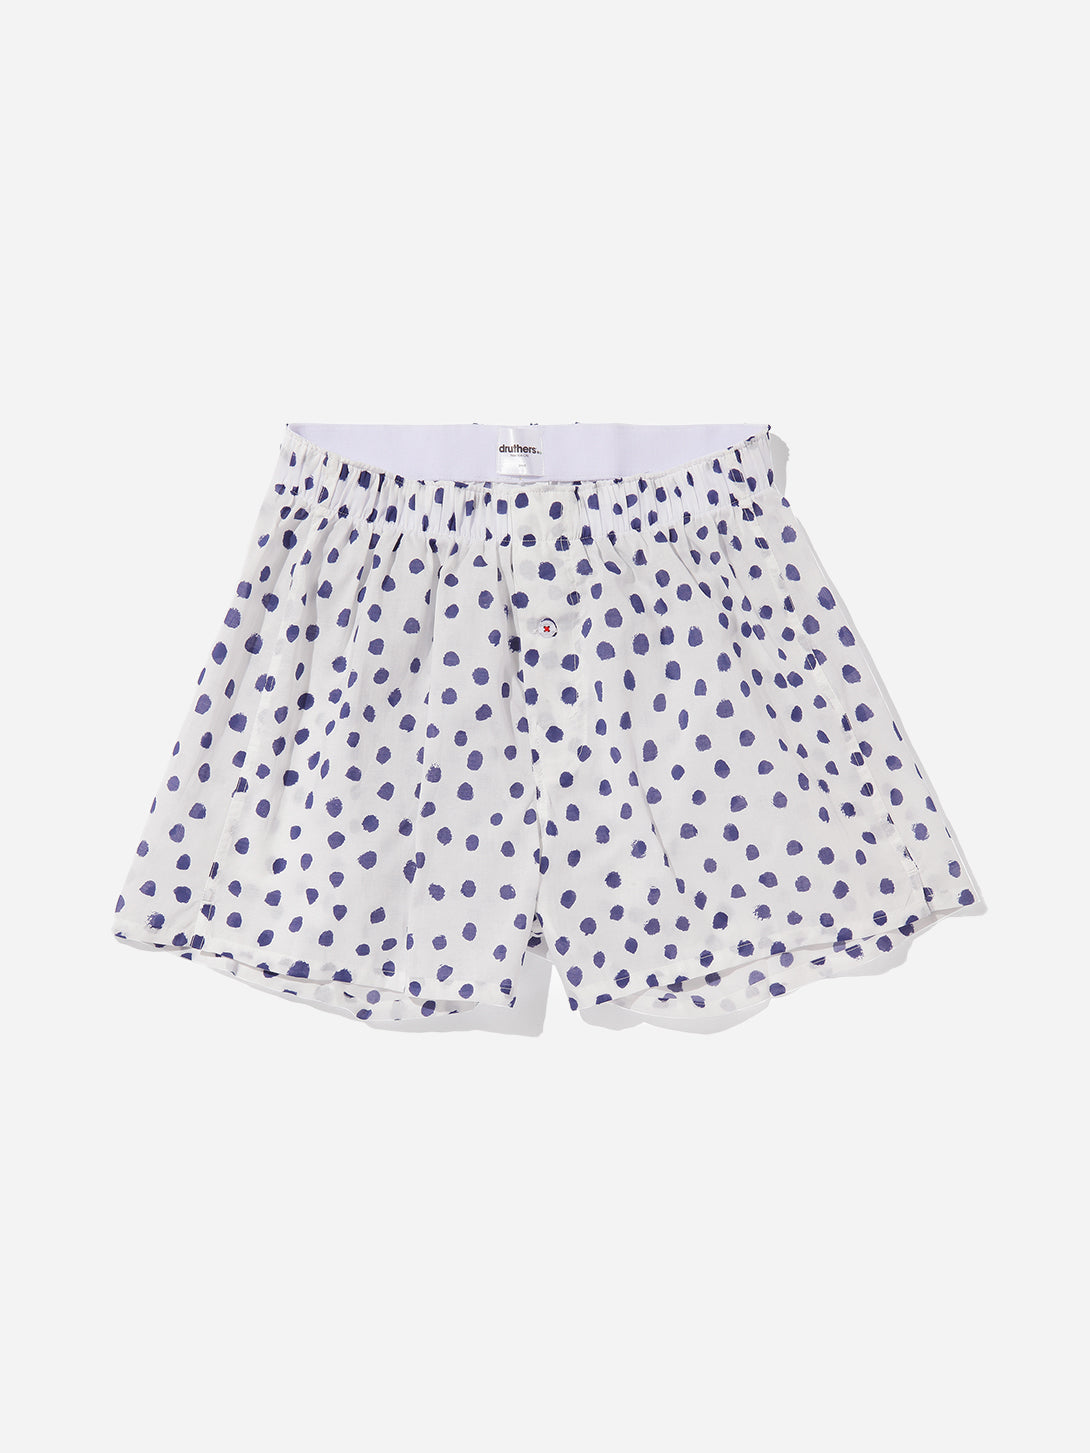 ons mens clothing druthers boxers in WHITE